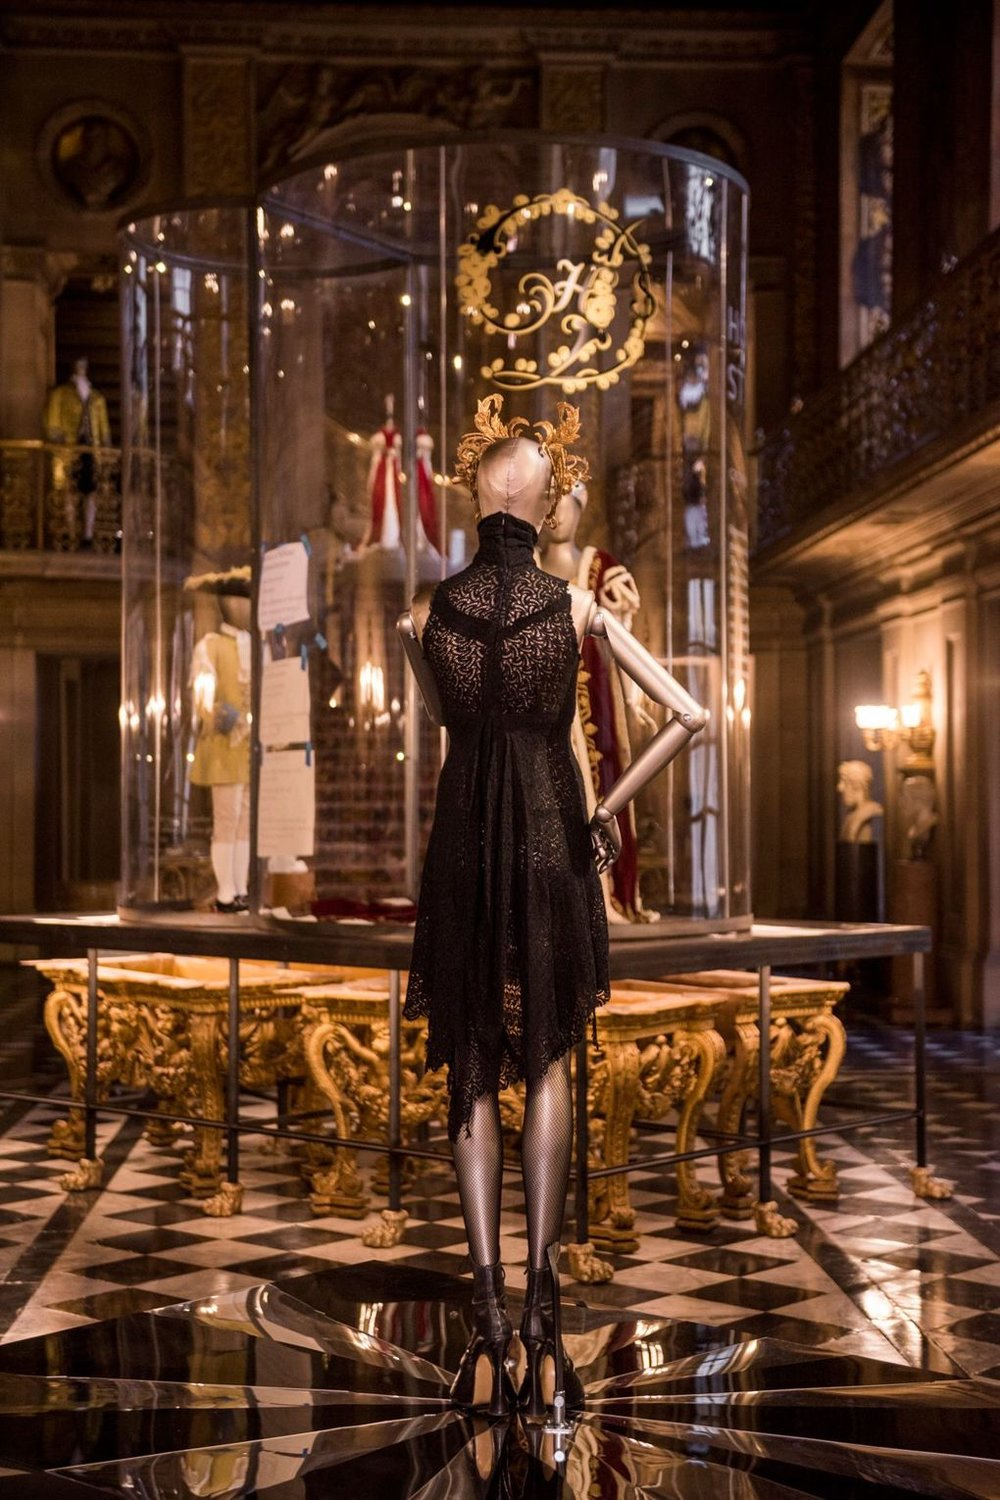 An Alexander McQueen dress worn by Stella Tennant in British Vogue is displayed in The Painted Hall at Chatsworth House. Image courtesy of Chatsworth Trust.